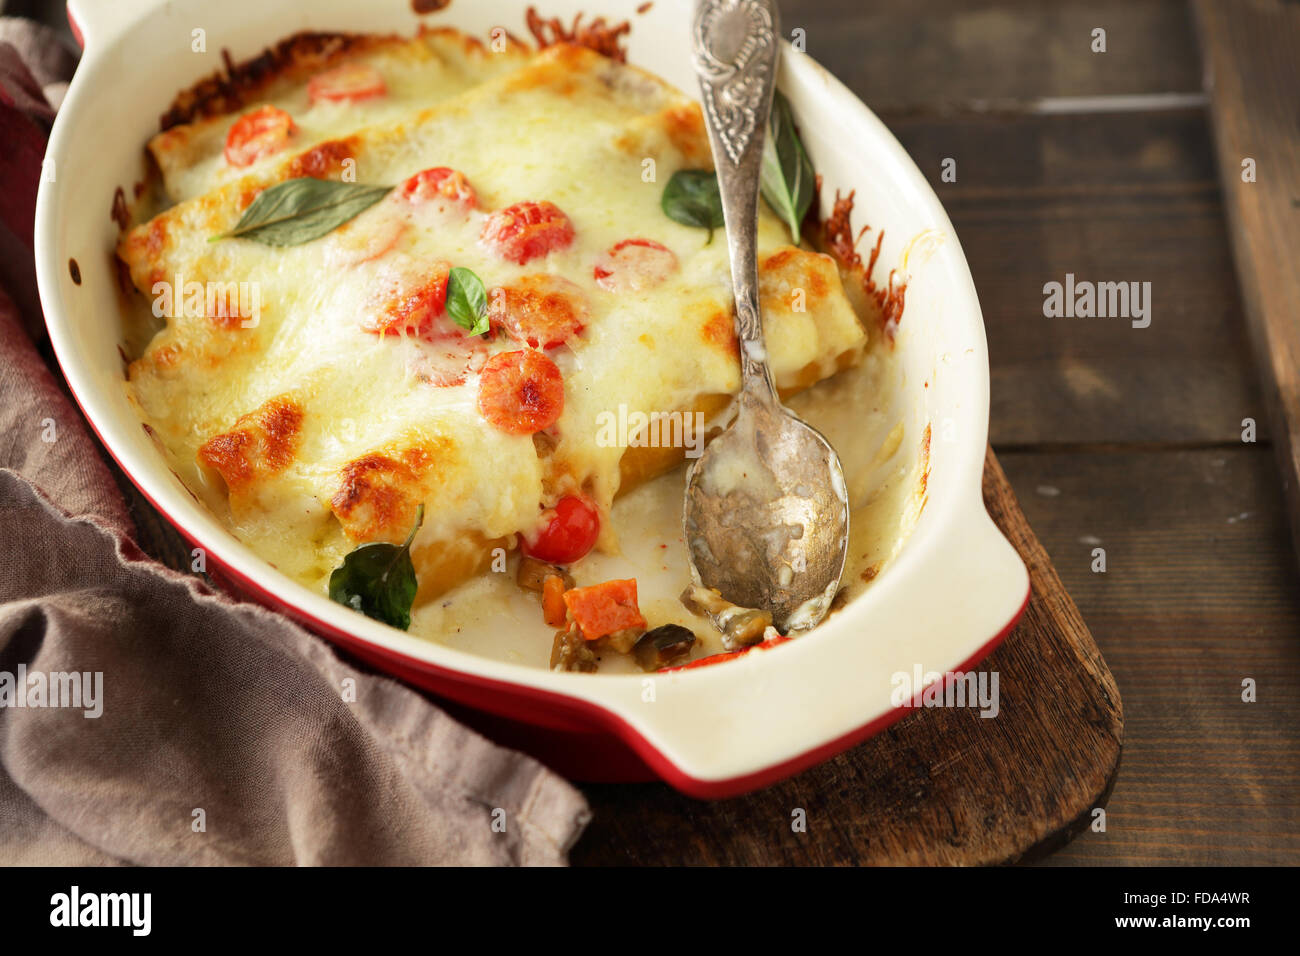 cannelloni with cheese, food closeup - Stock Image